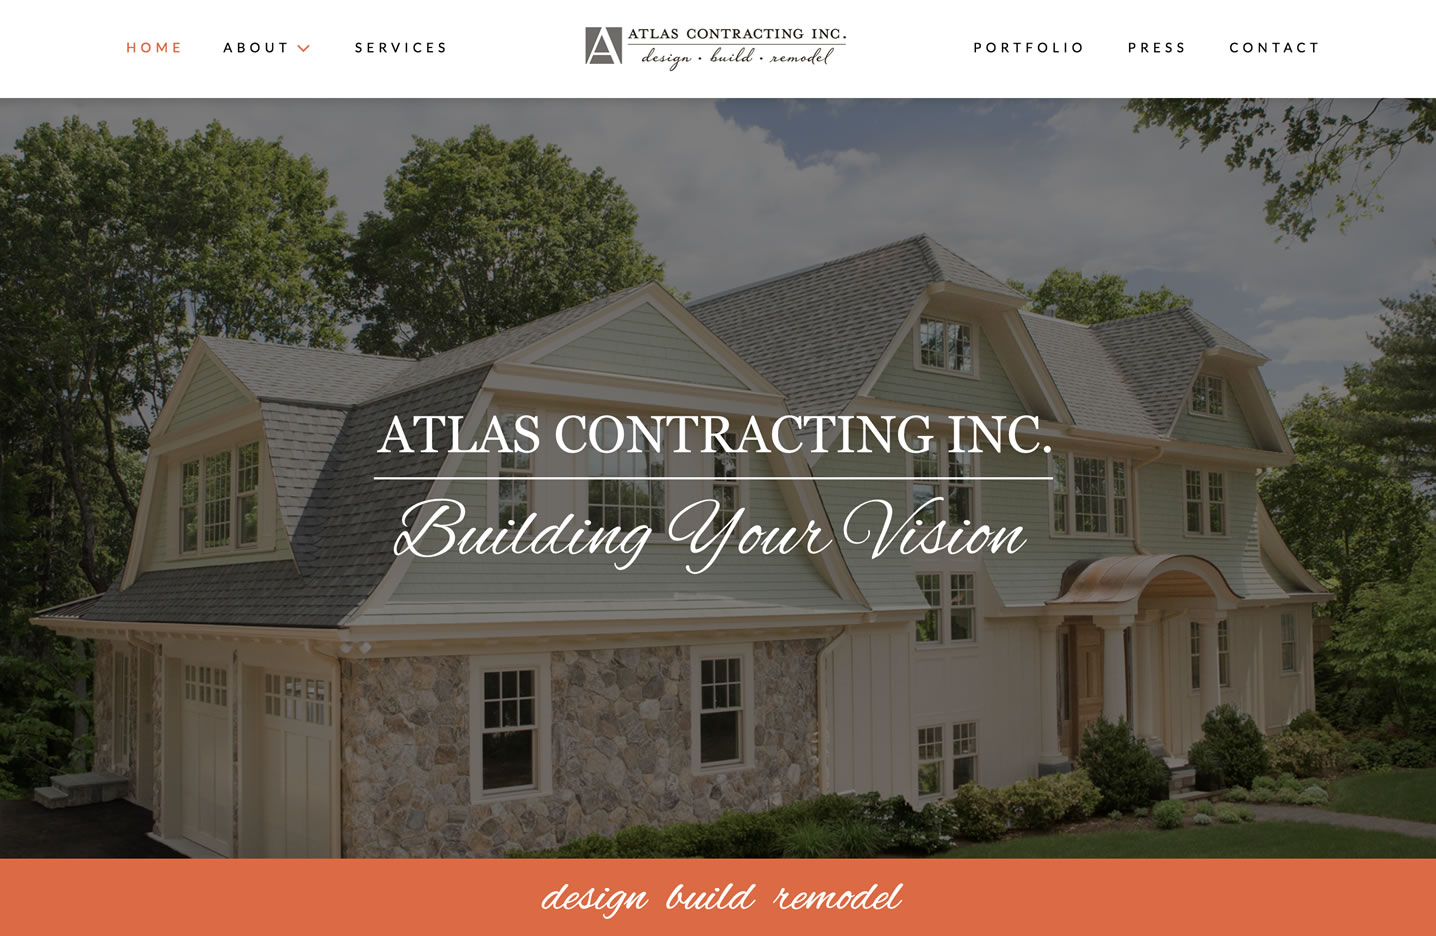 Atlas Contracting